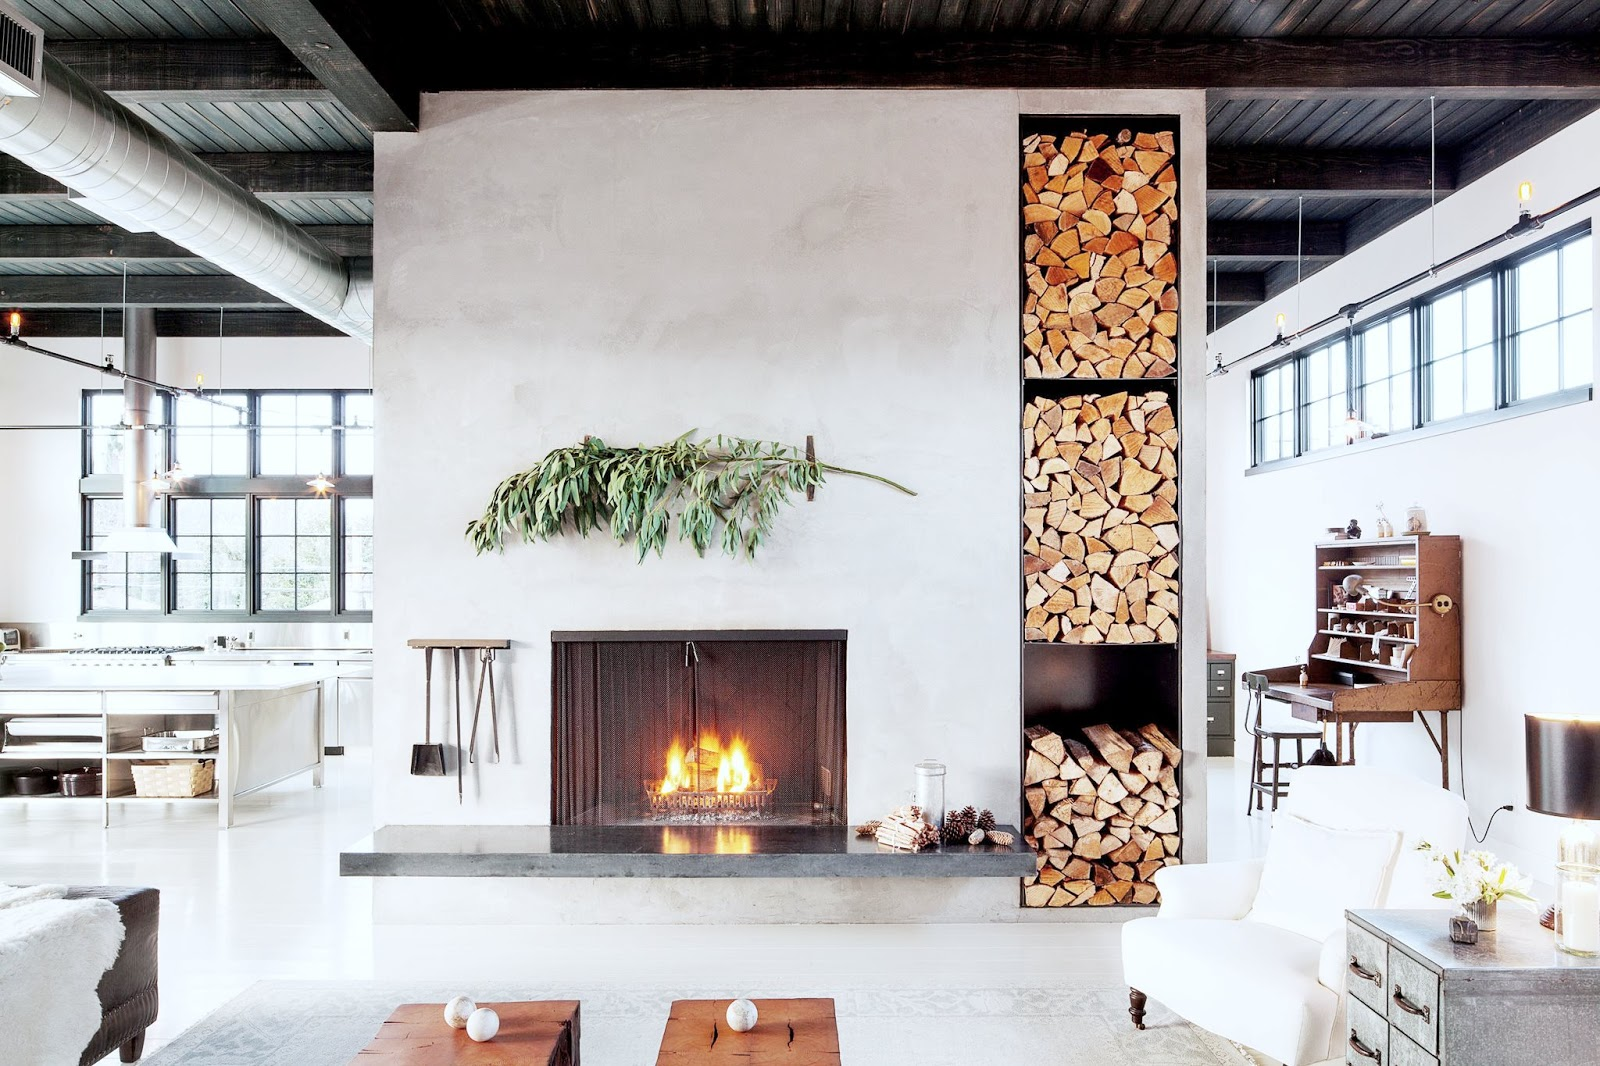 living room fireplace industrial loft cococozy nyt cococozy. Black Bedroom Furniture Sets. Home Design Ideas